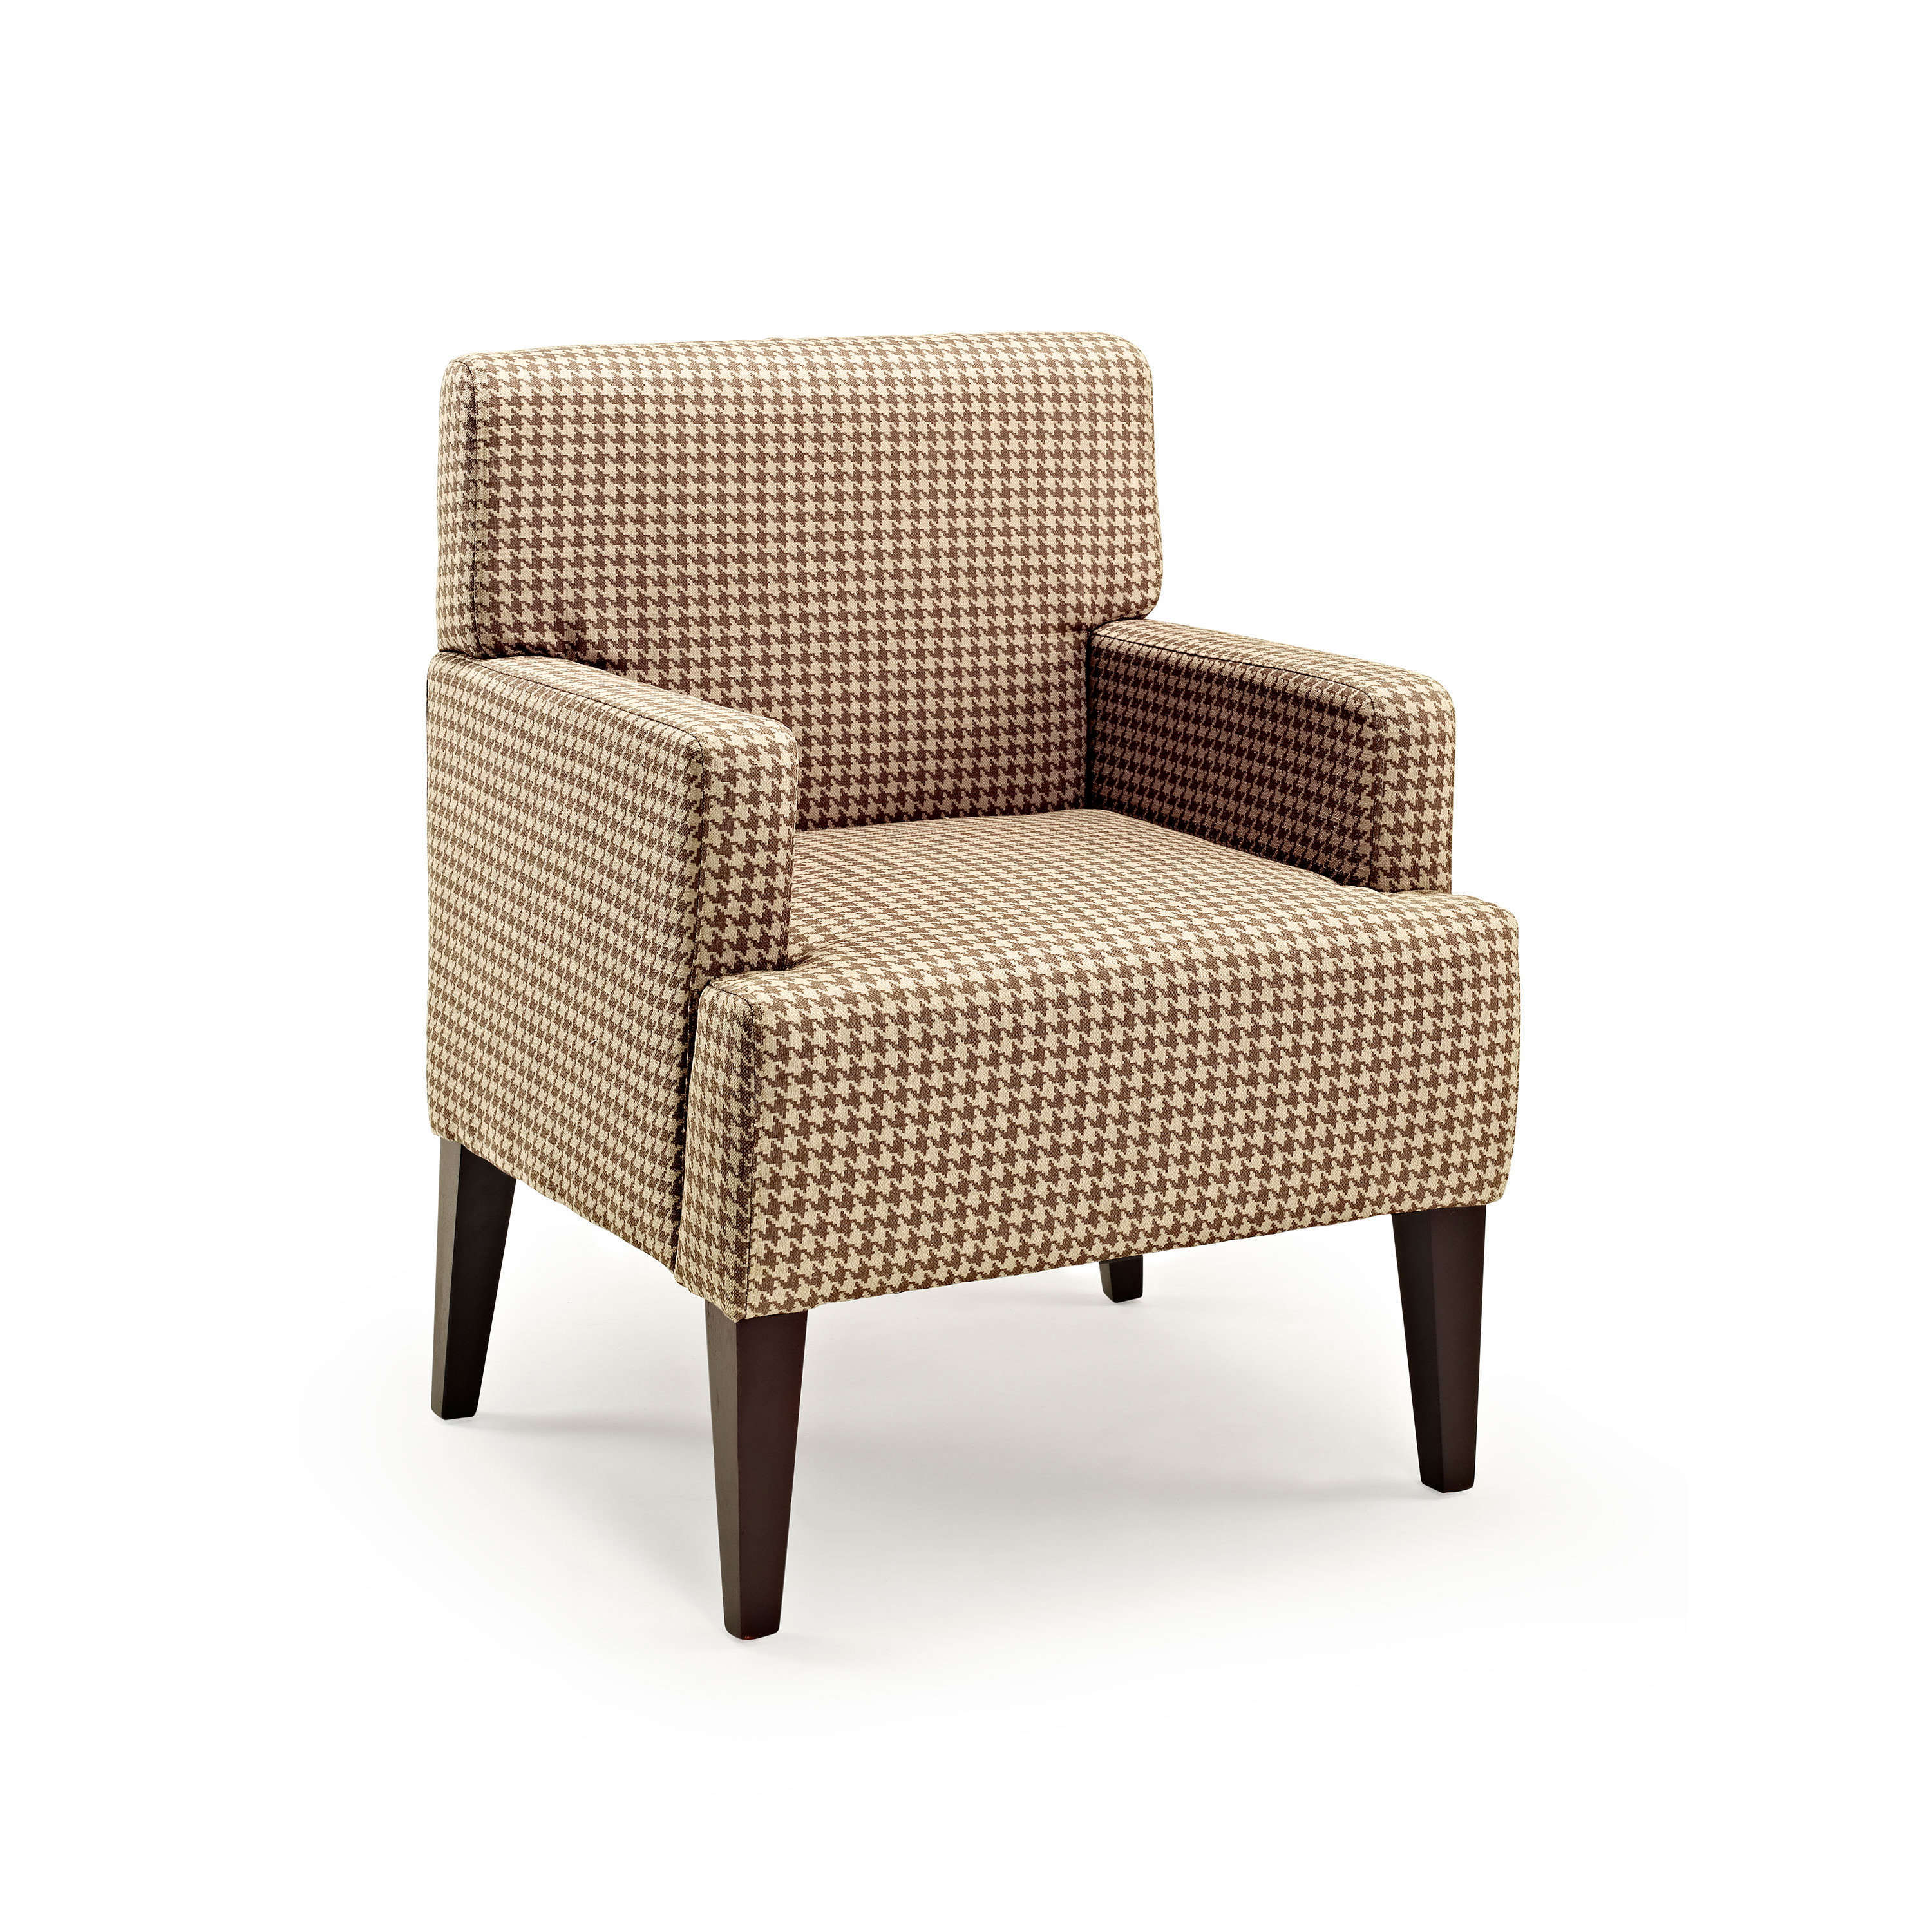 Parlour Scotty Houndstooth Upholstered Accent Chair, Multiple Colors